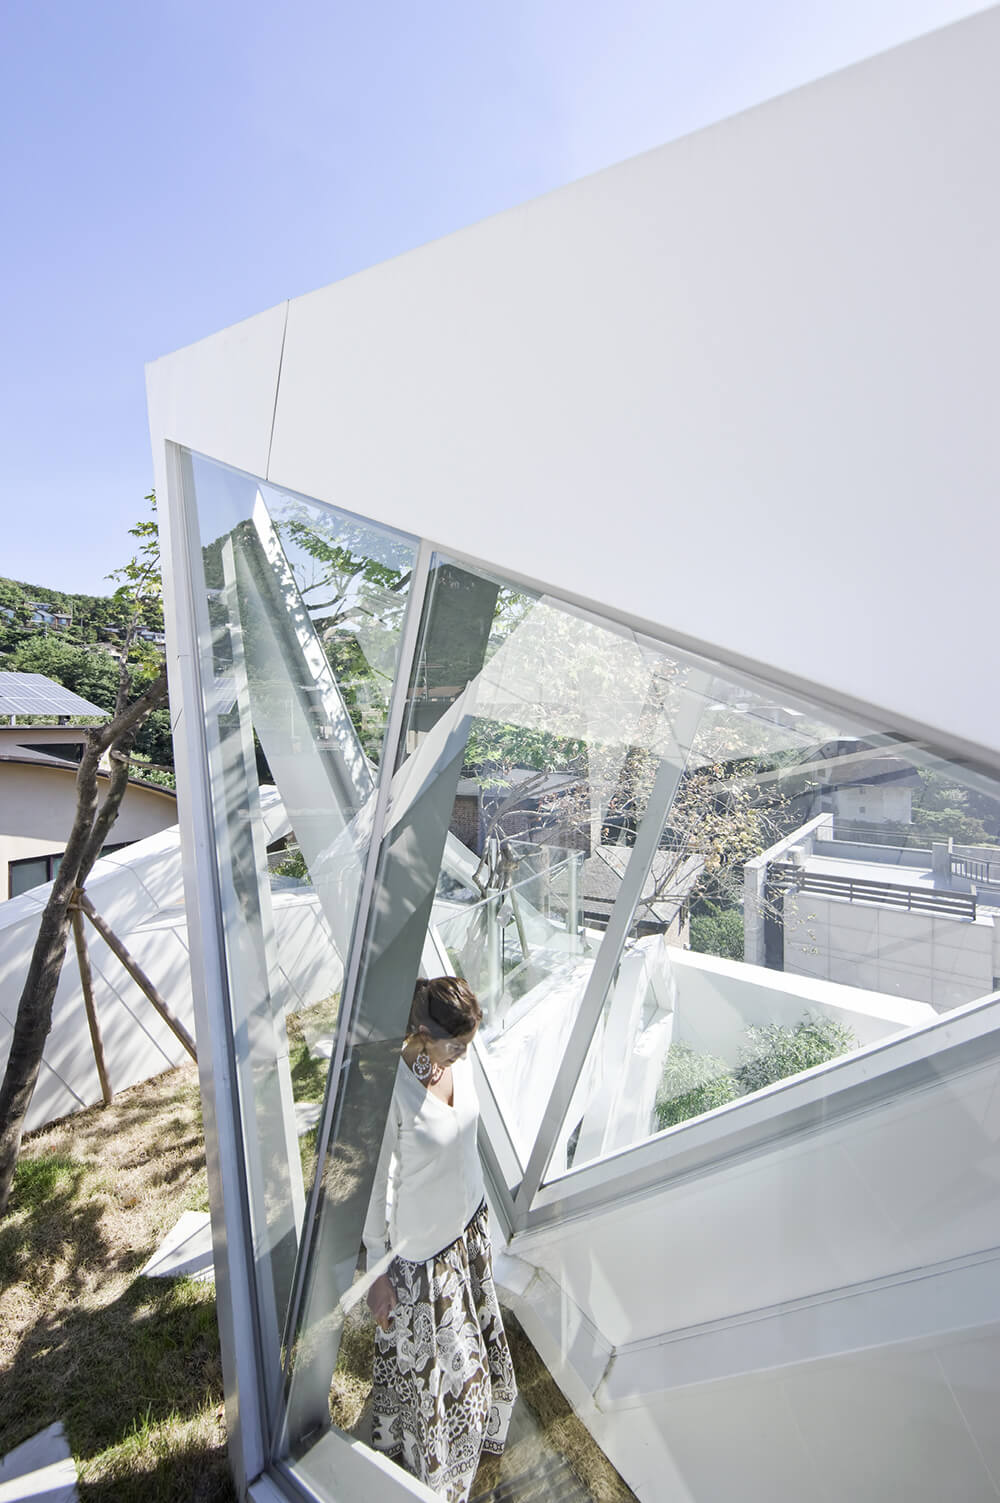 As we see one of the homeowners enjoying the lush greenery in her rooftop garden, the interlocking expanses of glass and sleek white space give way to the landscape beyond.